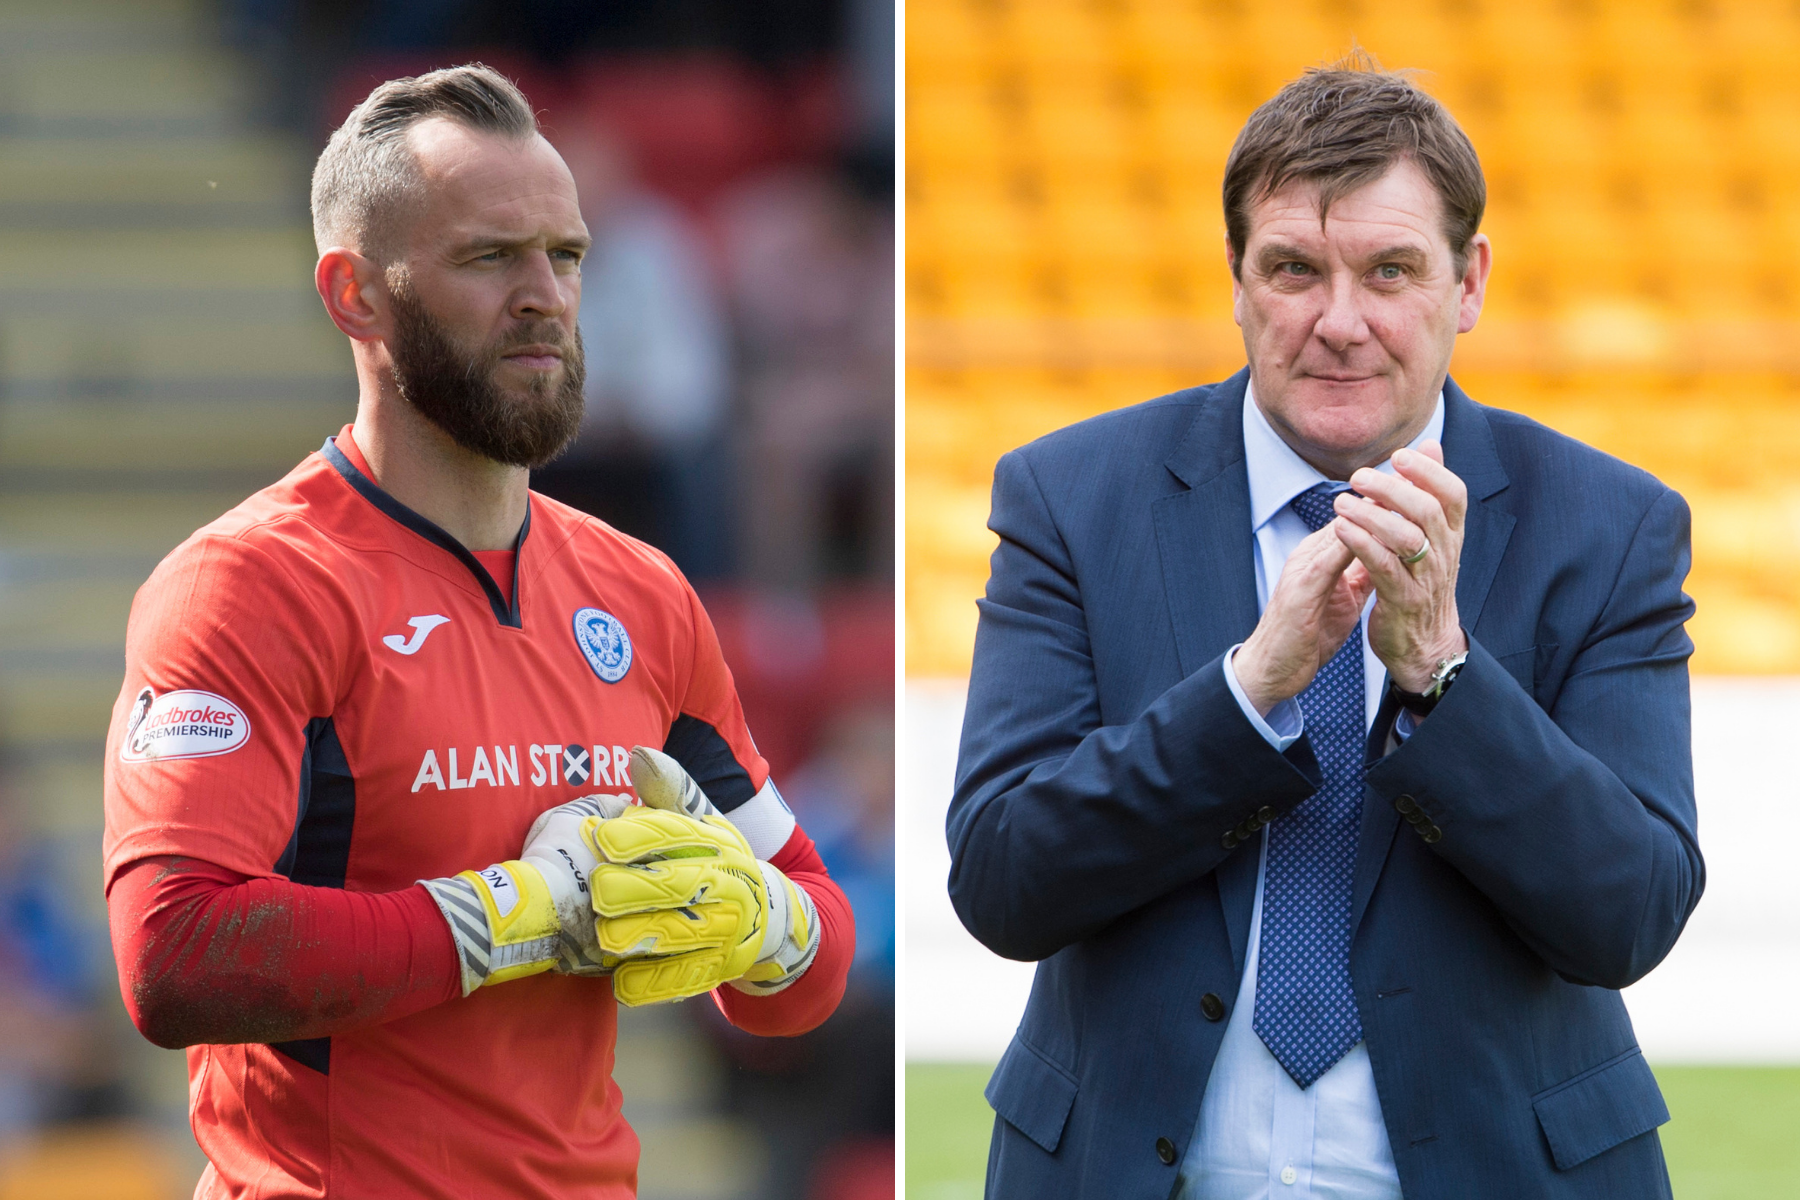 Former St Johnstone goalkeeper Alan Mannus on what Kilmarnock fans can expect from Tommy Wright